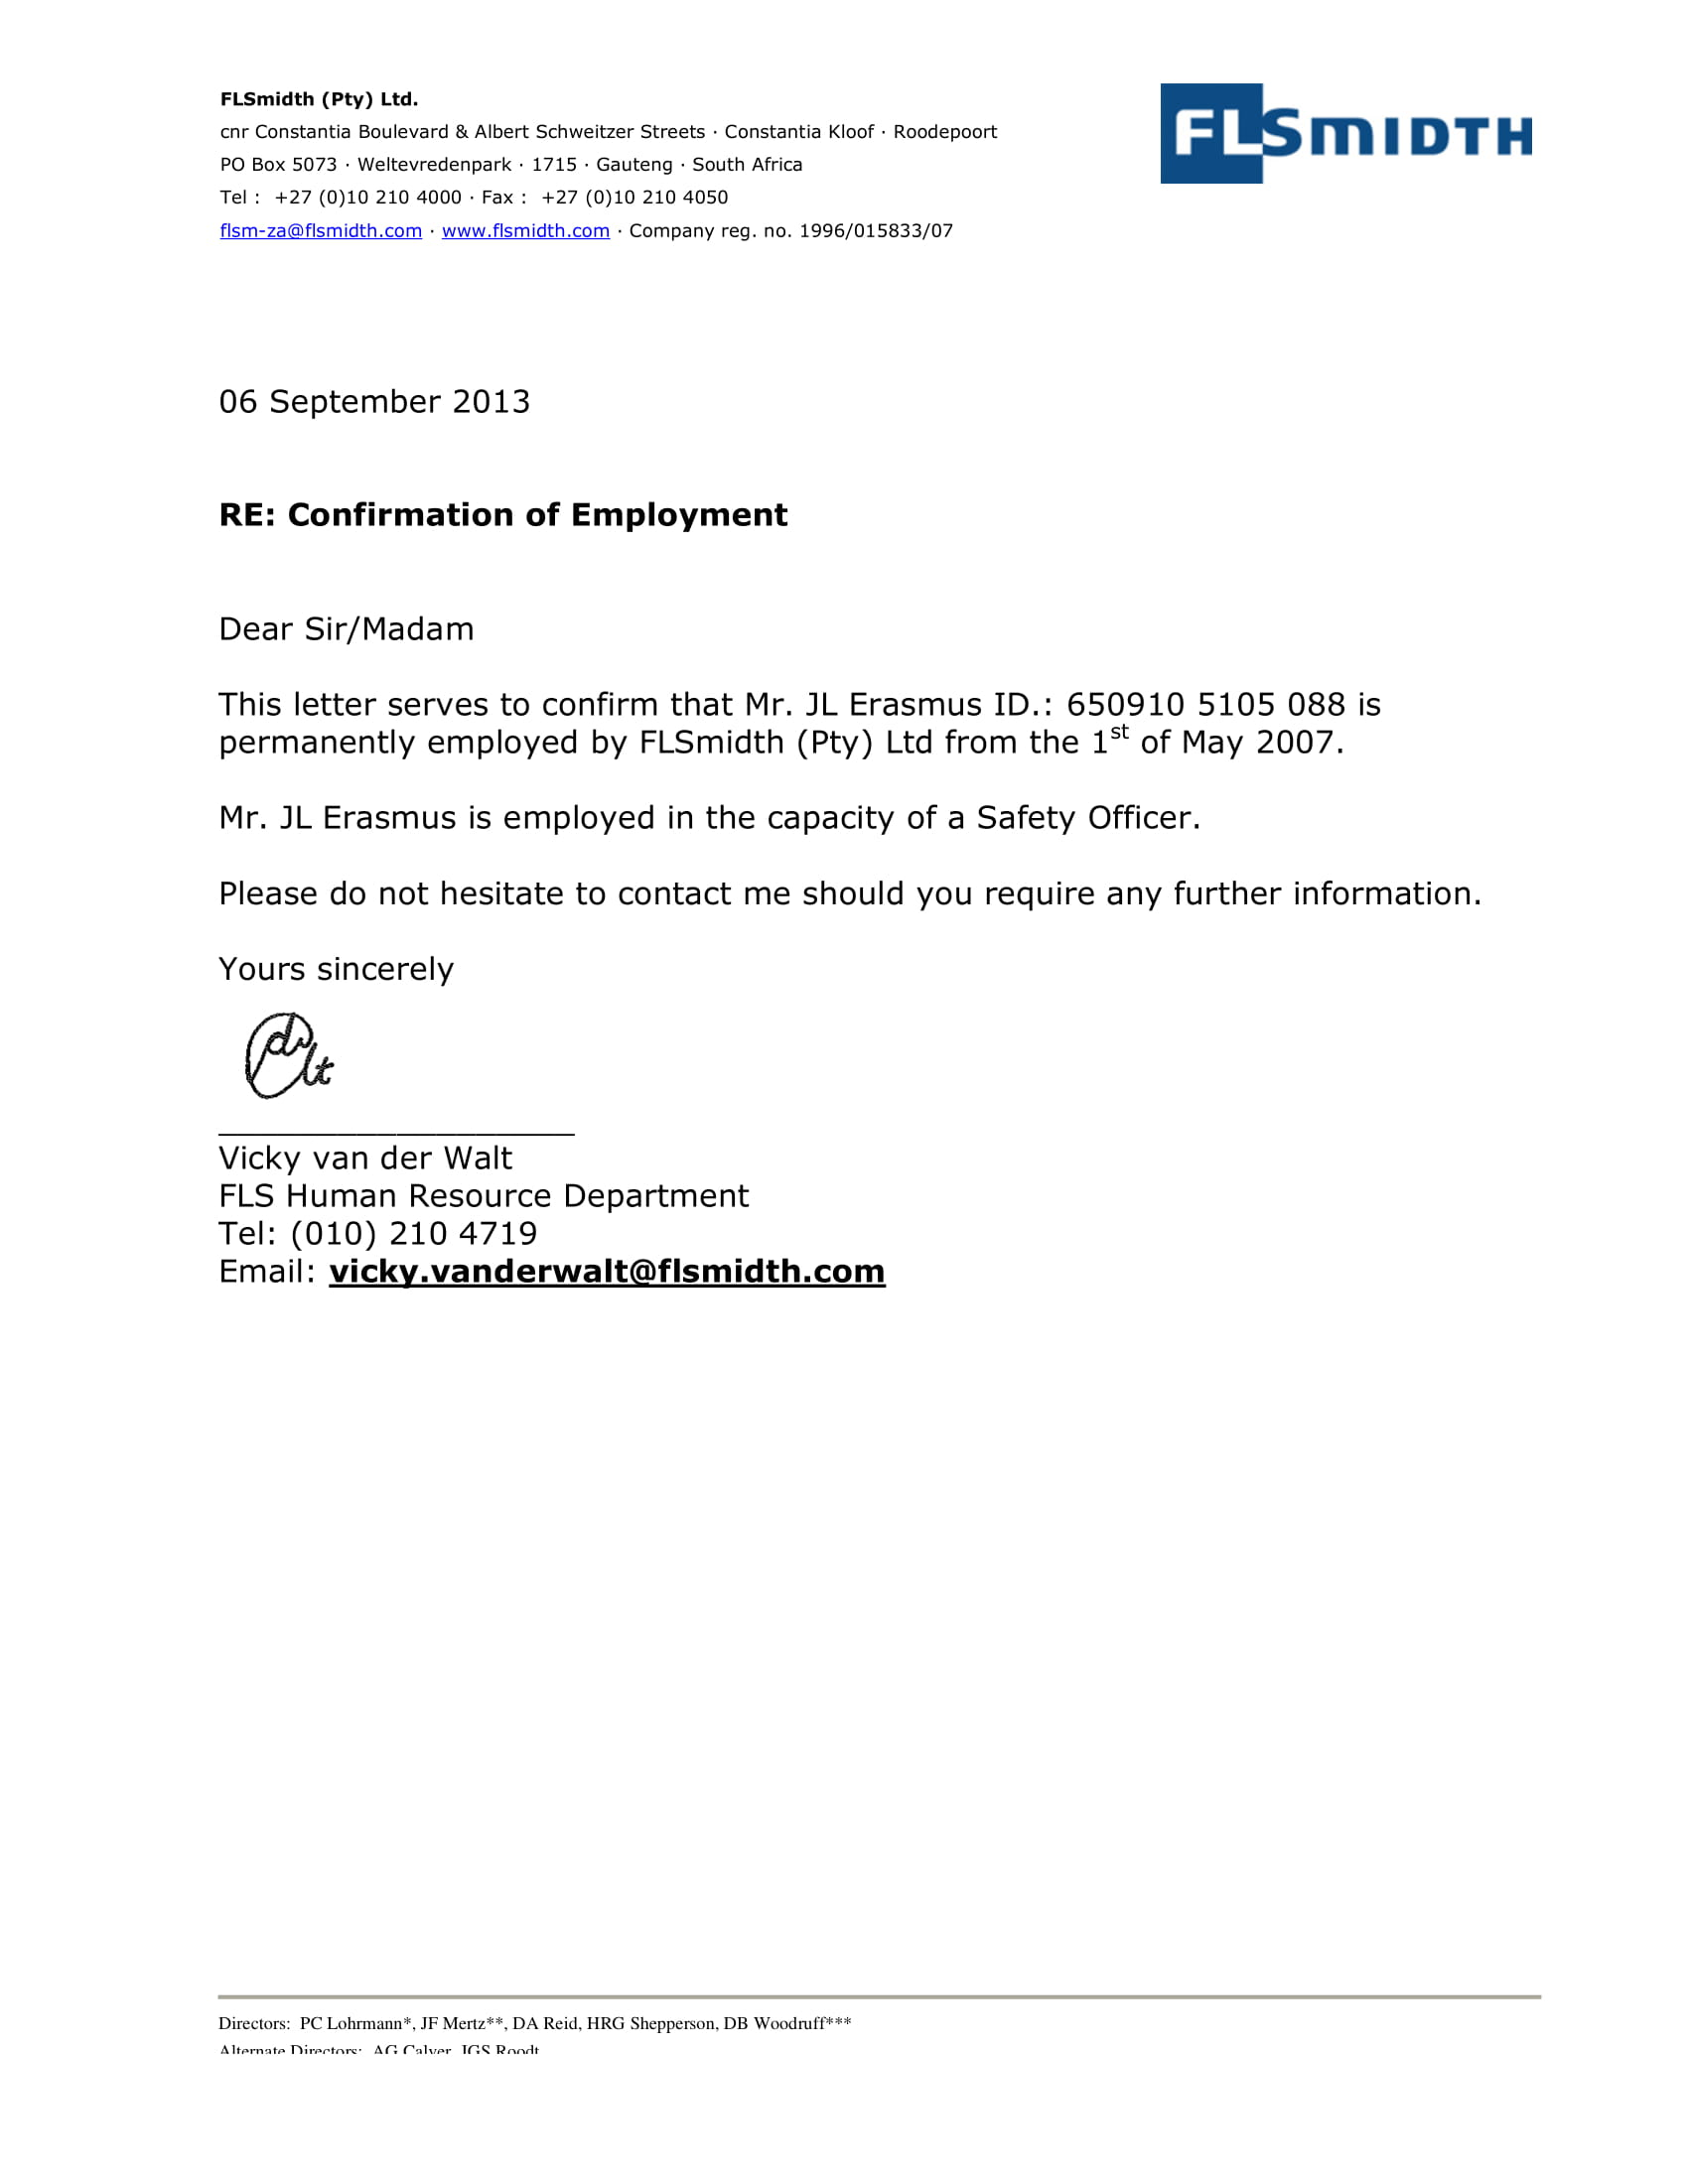 14 Employment Verification Letter Examples